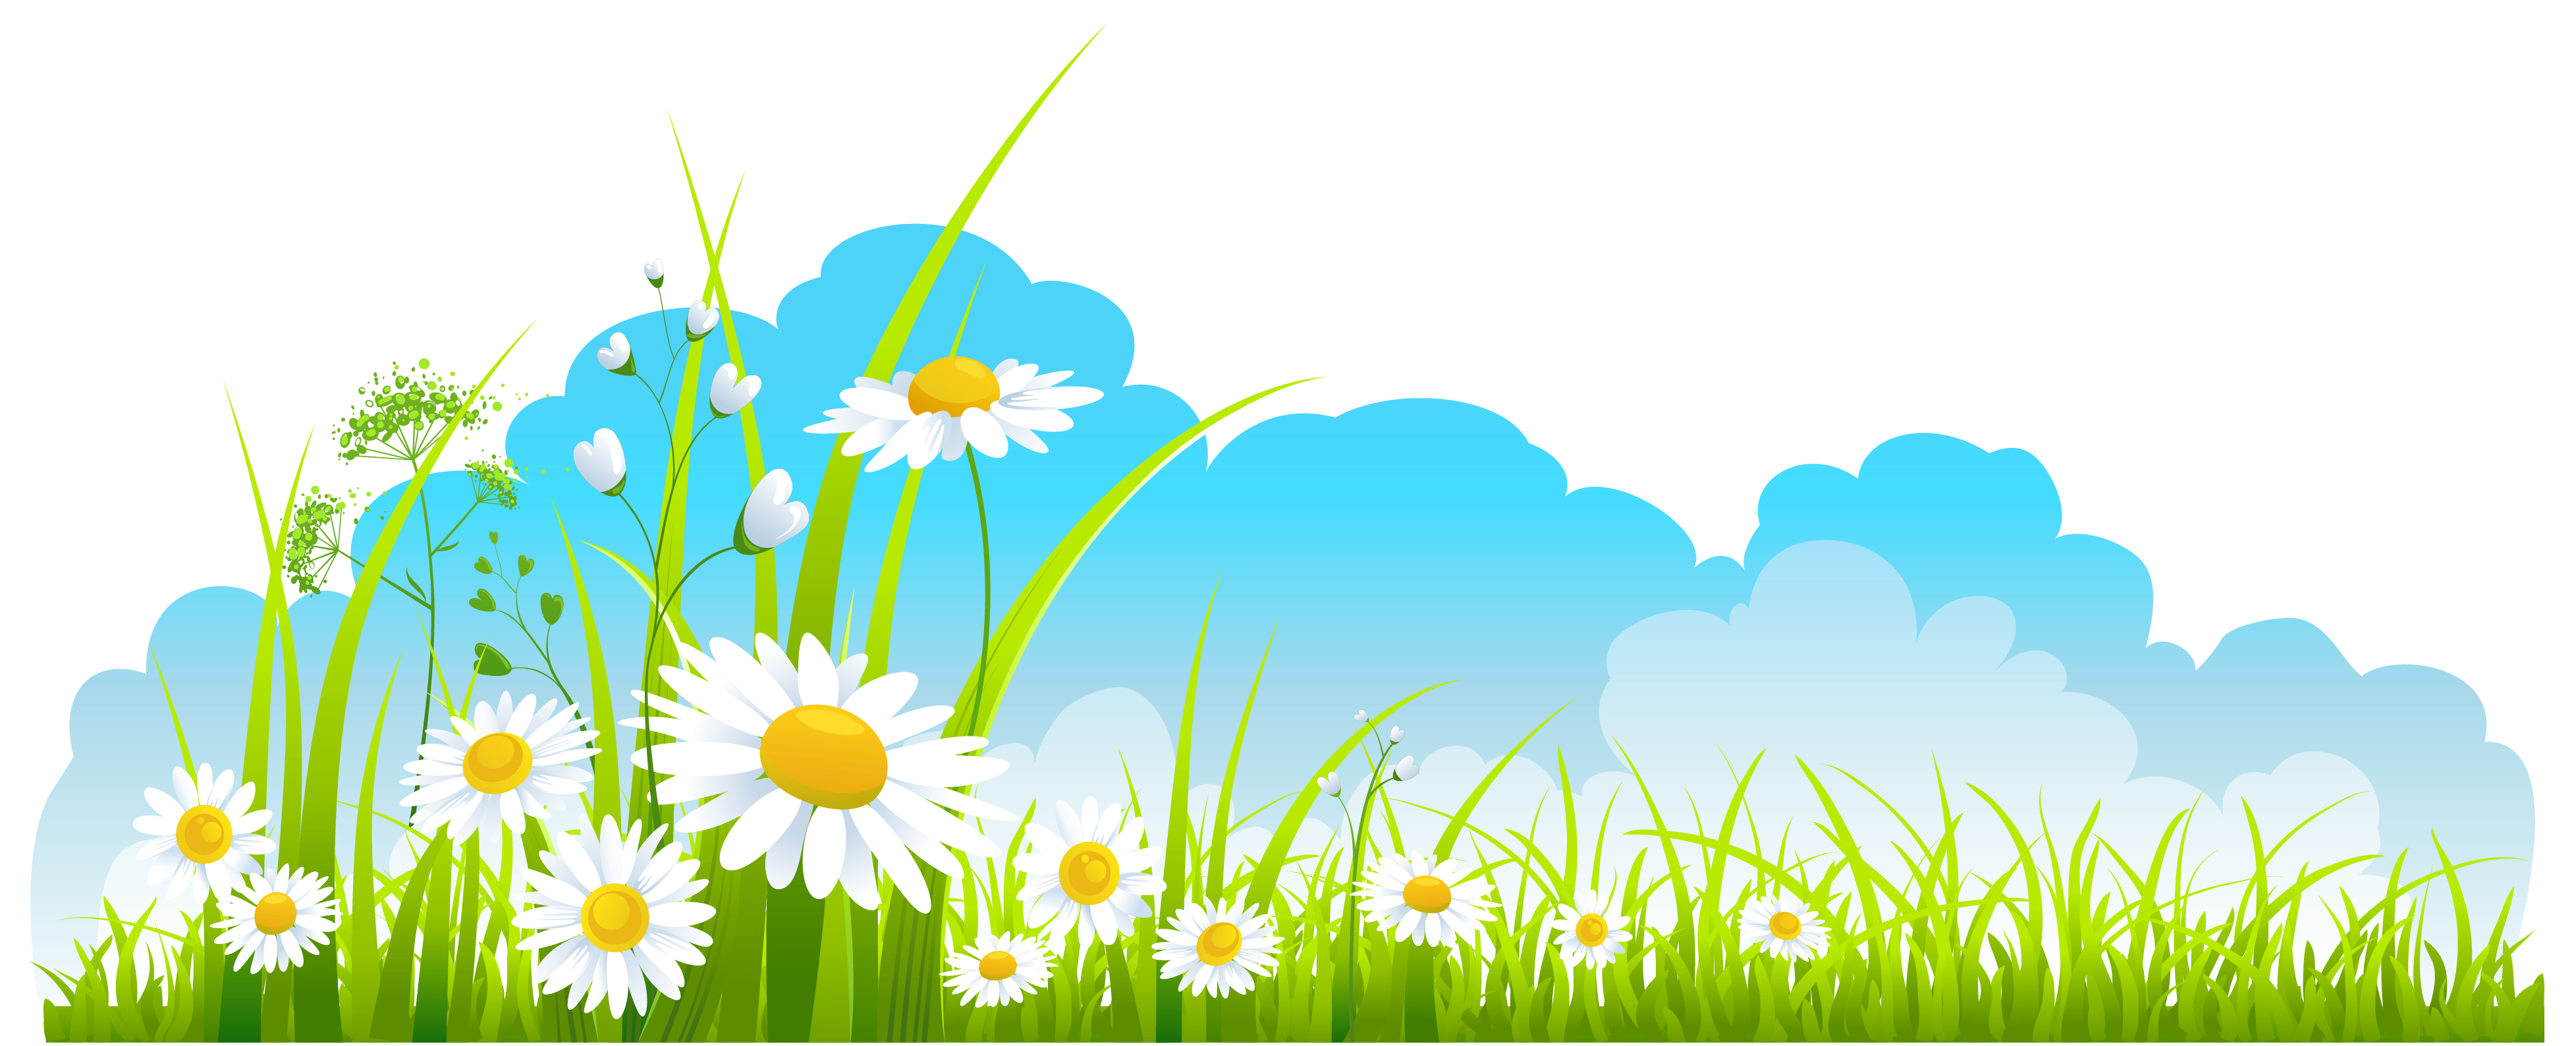 Spring flower backgrounds clipart clip art royalty free Spring Decor Sky Grass and Camomile PNG Clipart - ClipArt Best ... clip art royalty free